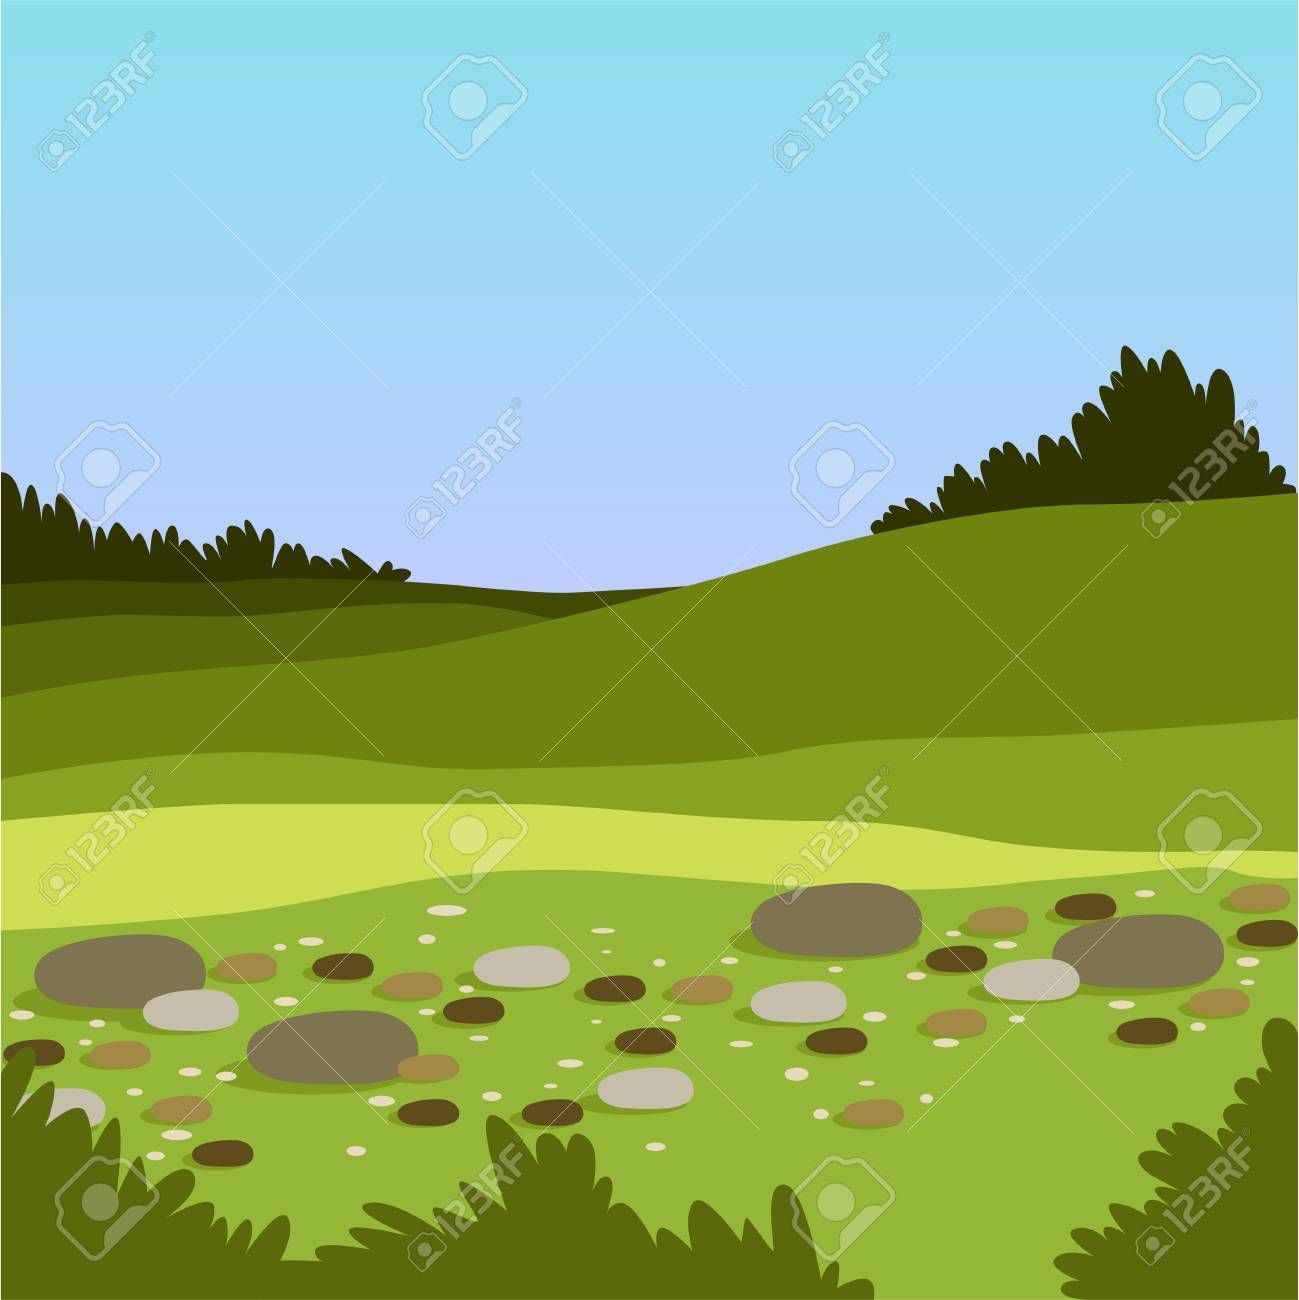 Beautiful Valley With Hills And Stones Green Summer Landscape Nature Background Vector Illustration Summer Landscape Wedding Card Design Nature Backgrounds